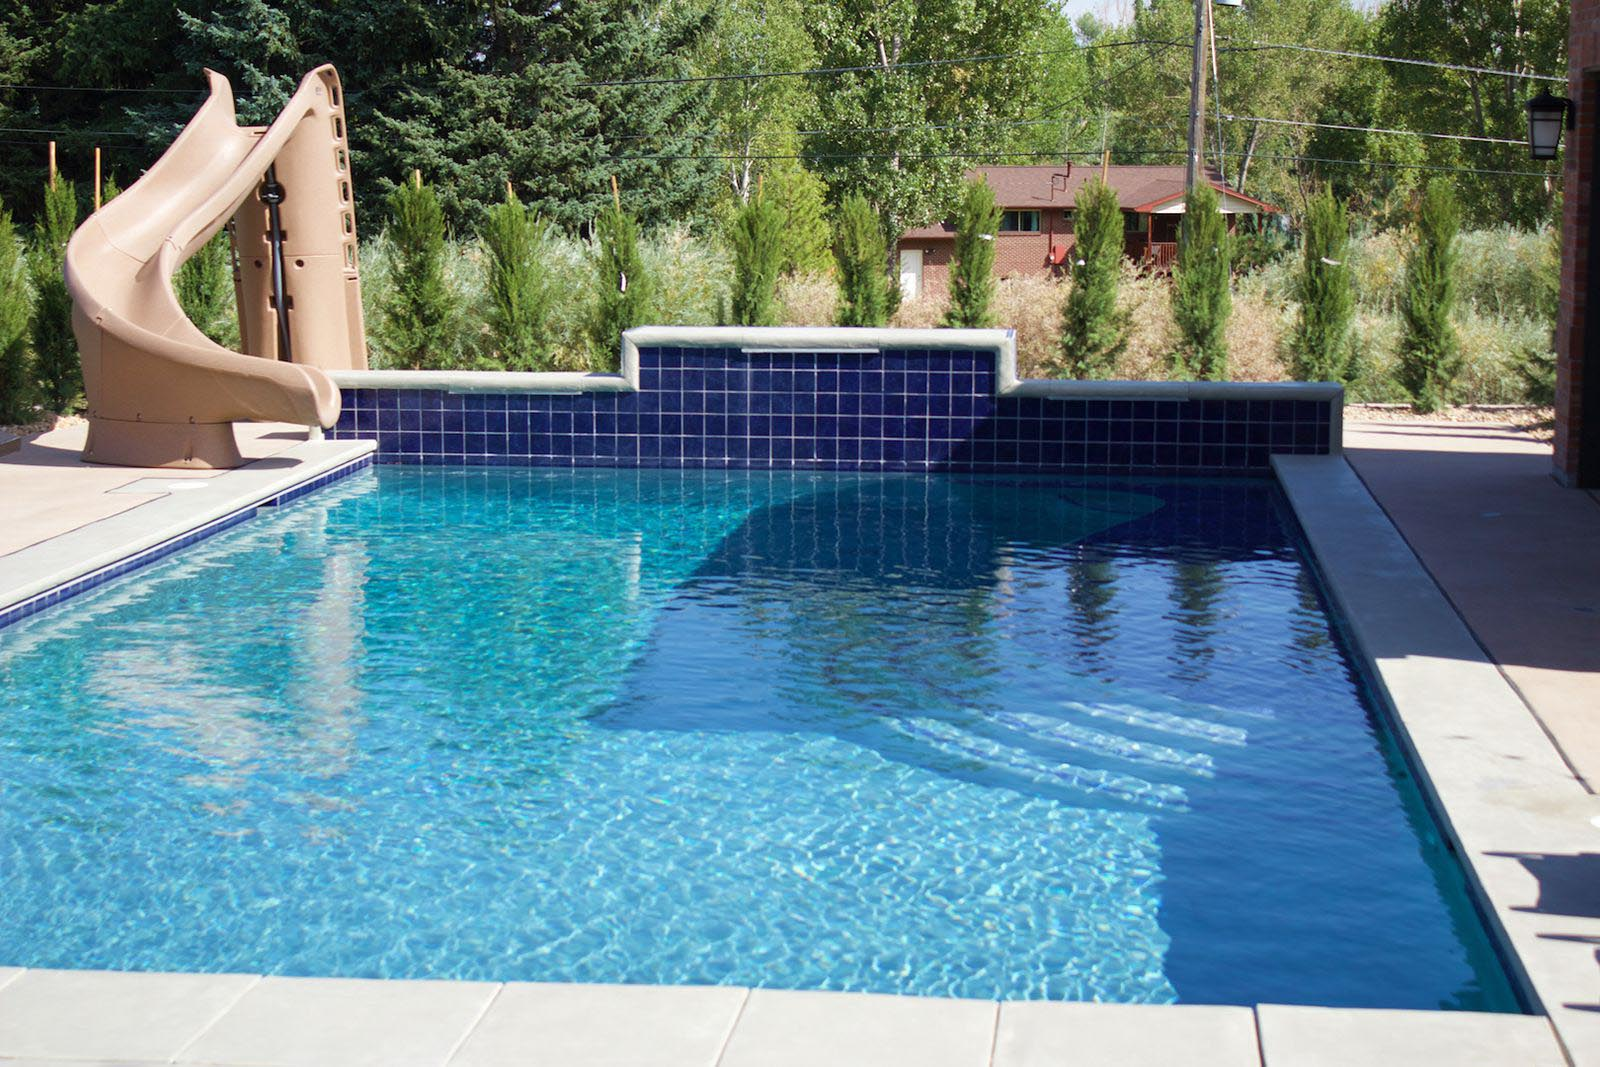 Slide for backyard pool backyard design ideas for Swimming pool ideas for backyard